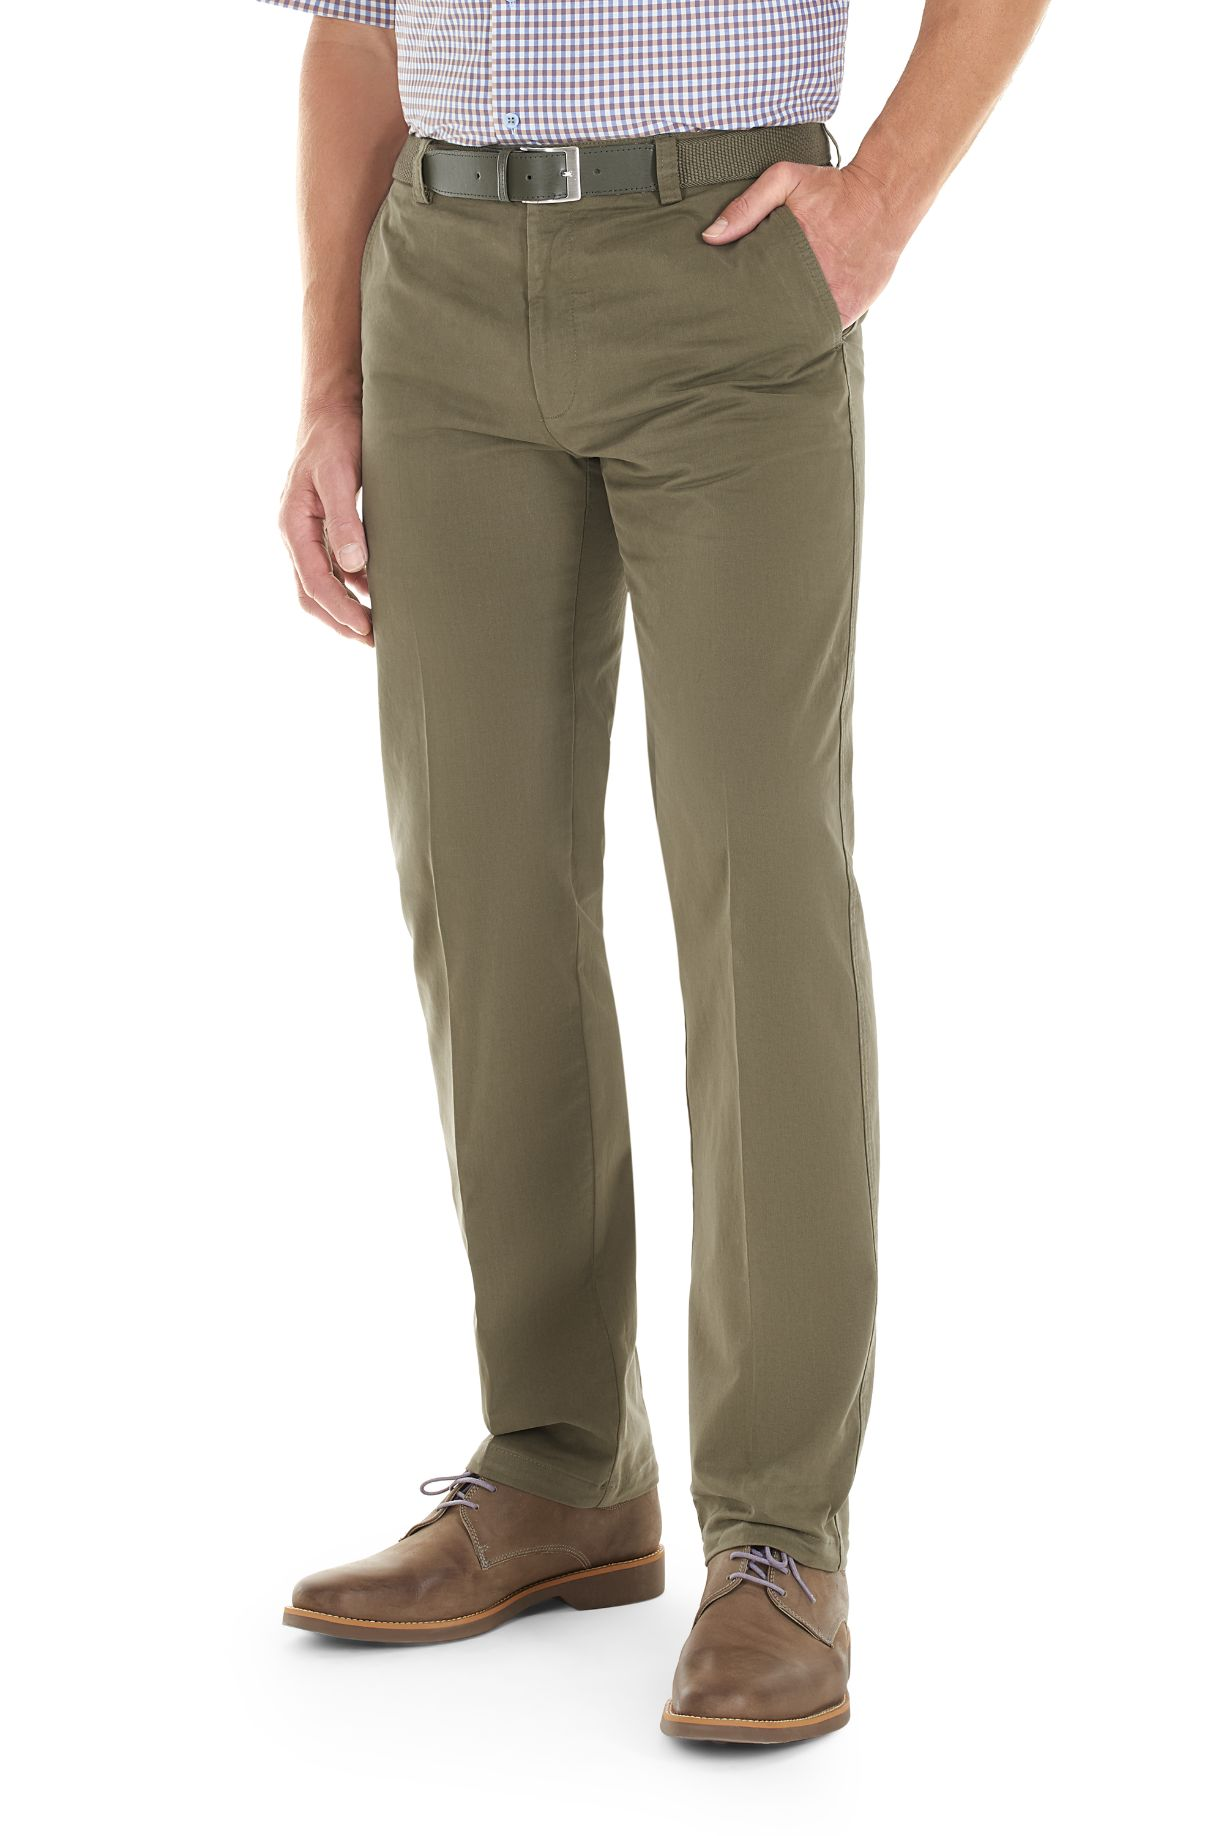 Gurteen Longford trousers in acorn